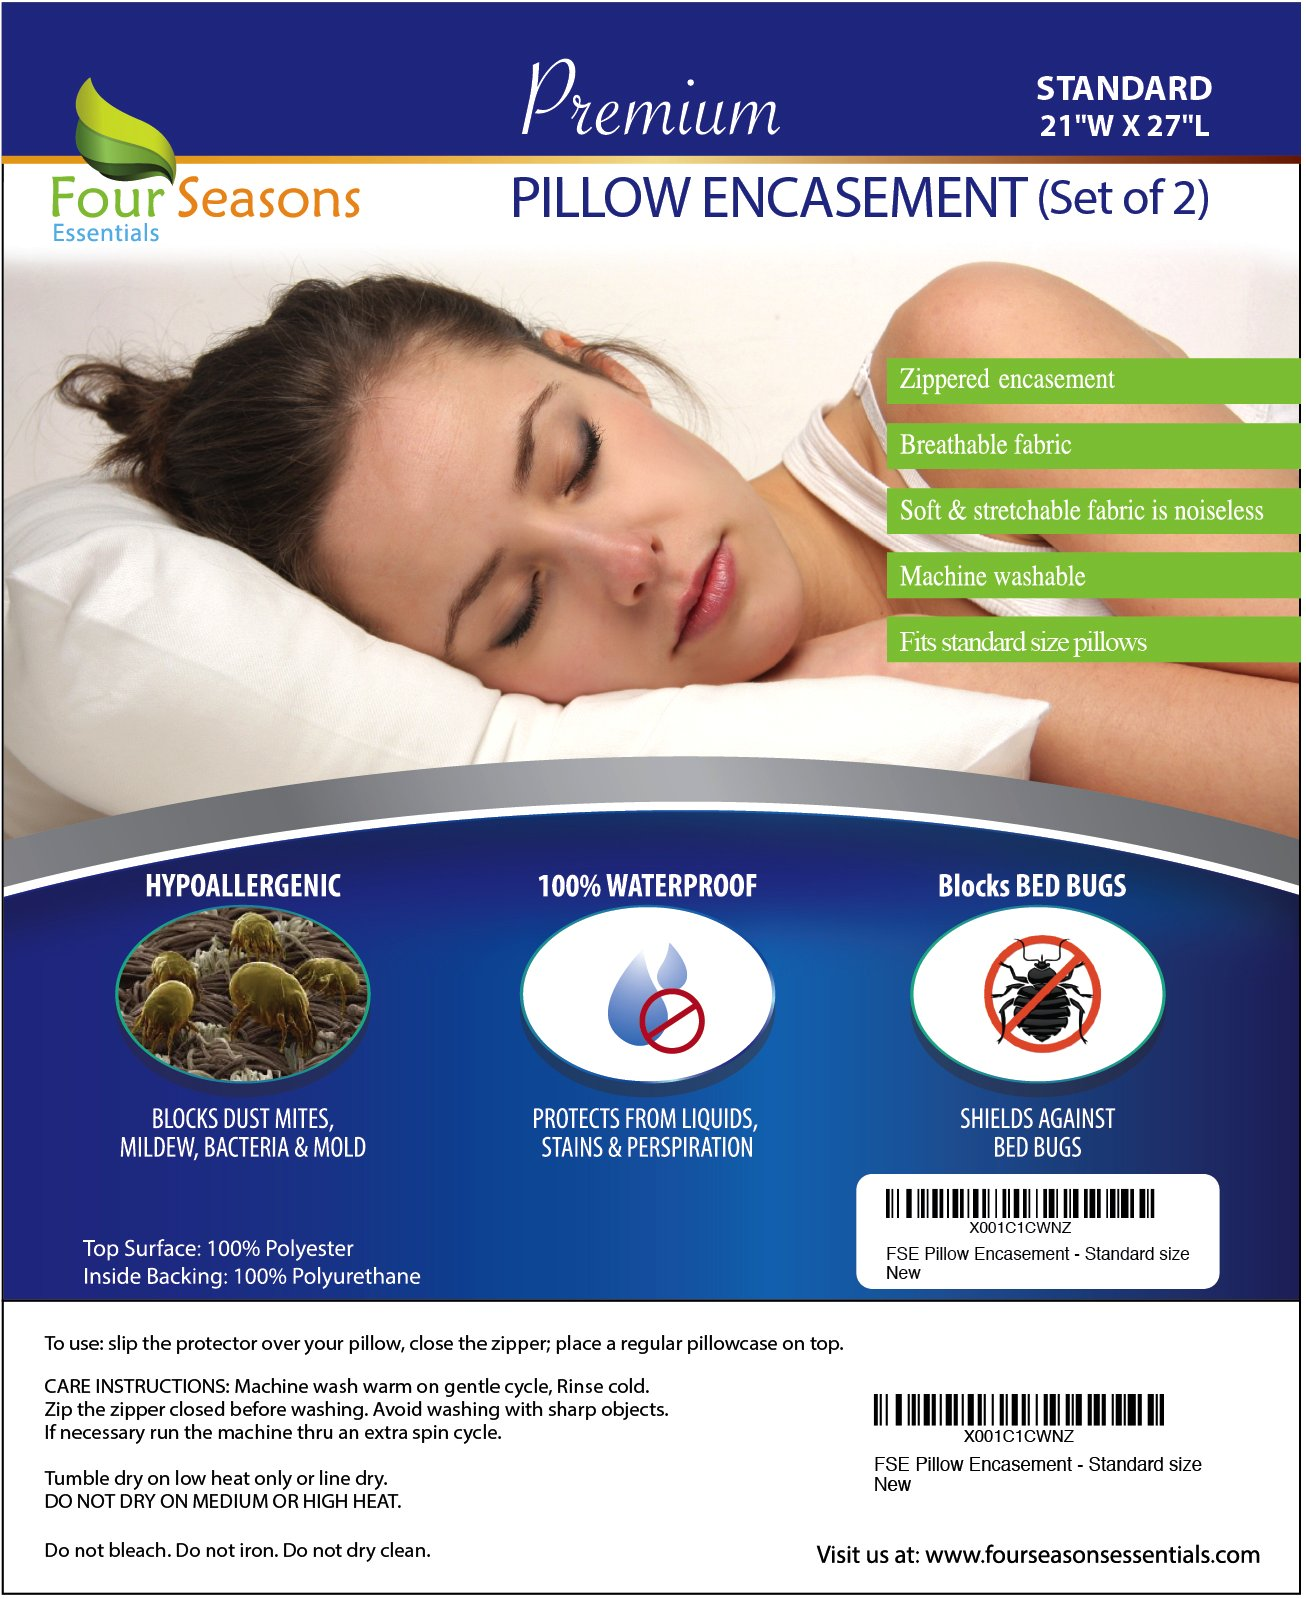 Zippered Pillow Encasement King 21/×37 RestComfort Set of 2 Bed Bug and Dust Mite Bacteria Hypoallergenic Breathable and Quite Allergy Proof//Waterproof Pillow Protectors